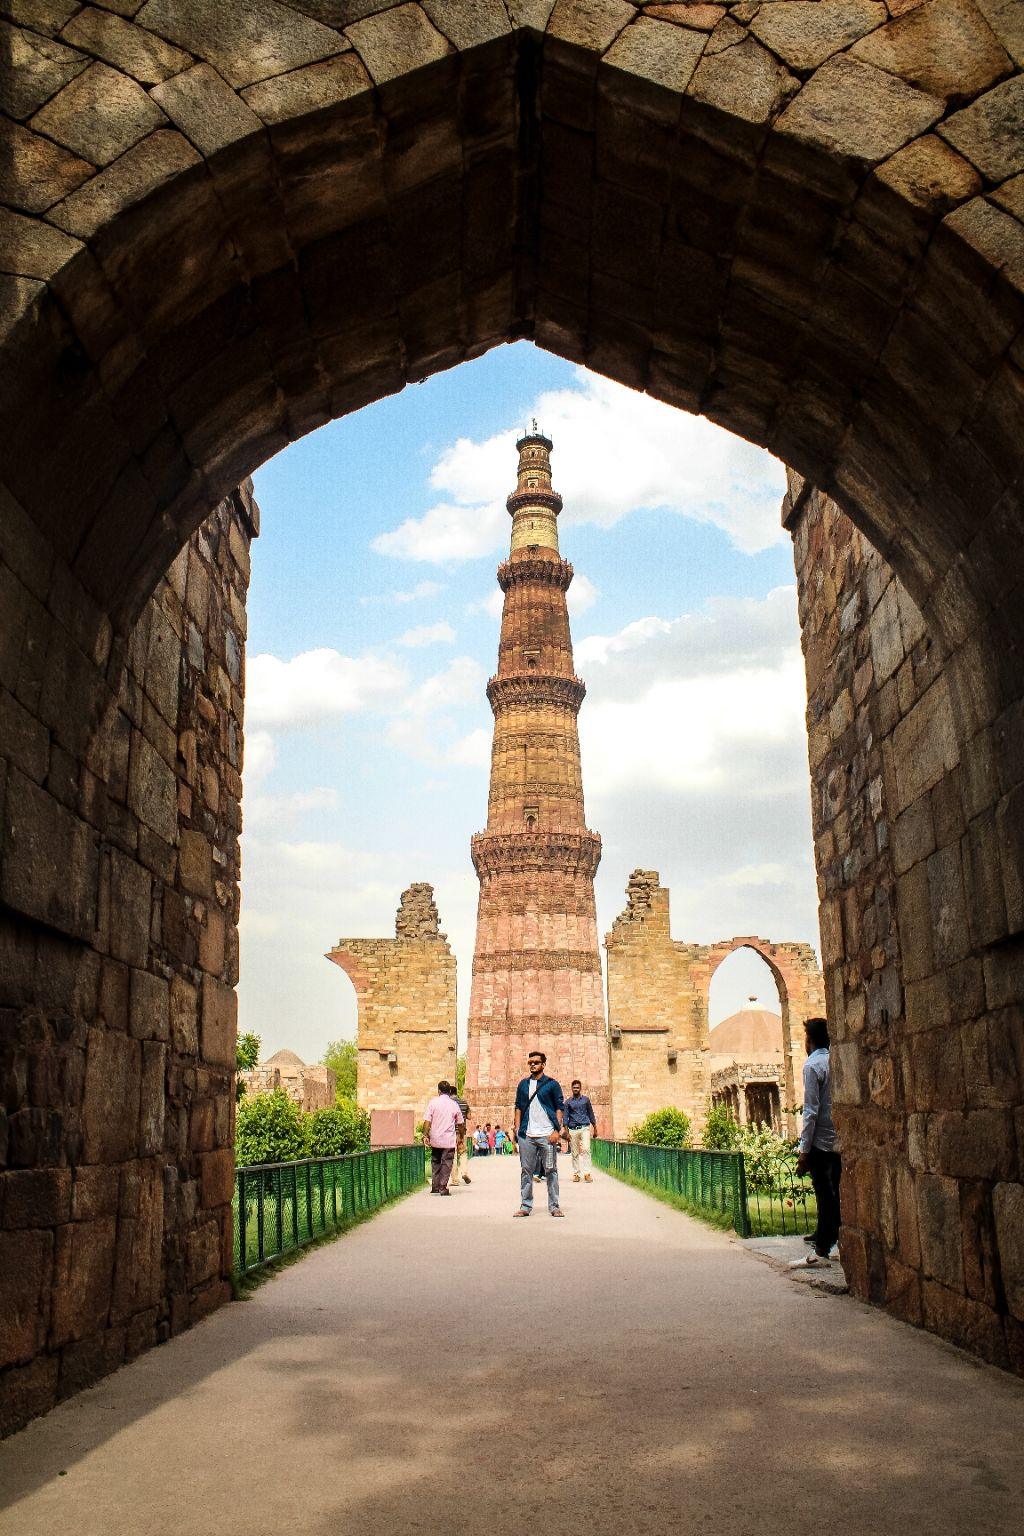 Photo of Qutub Minar By Ved Nayak